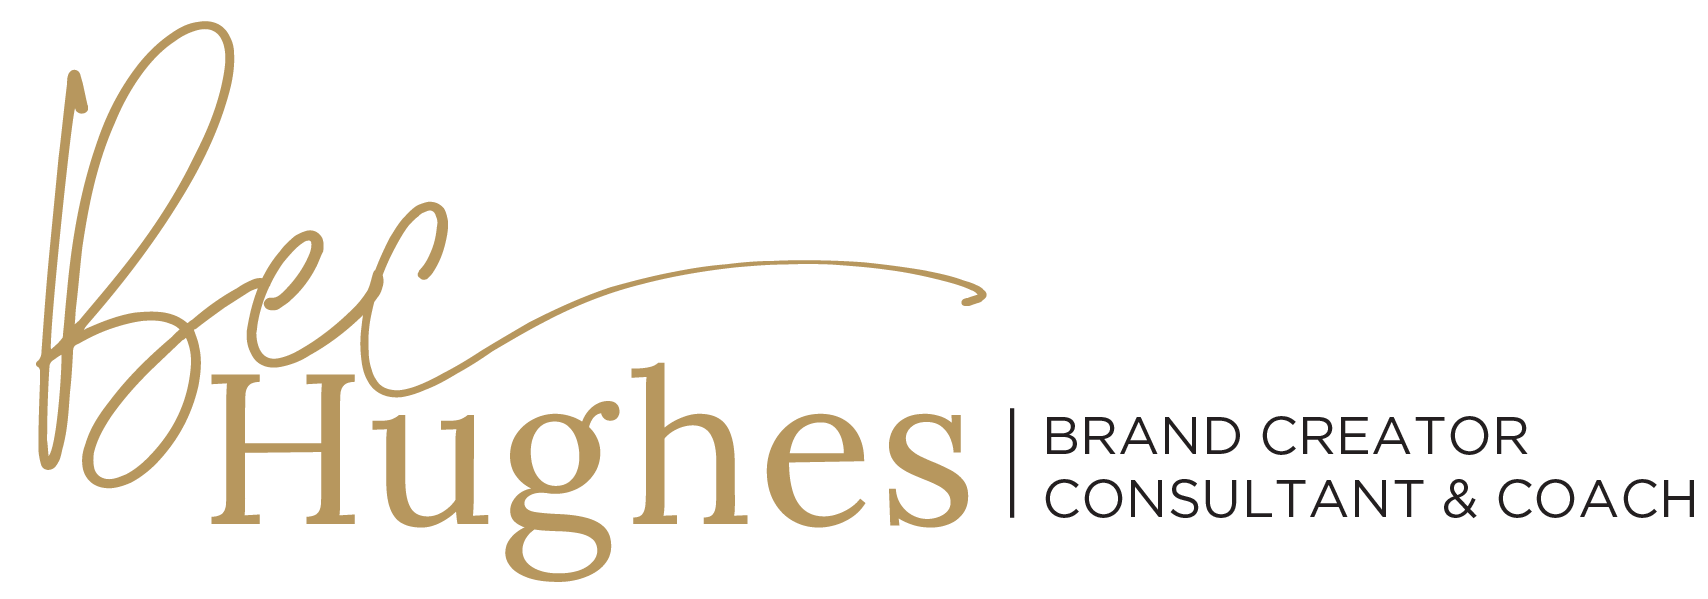 Bec Hughes | Brand Coaching & Consulting